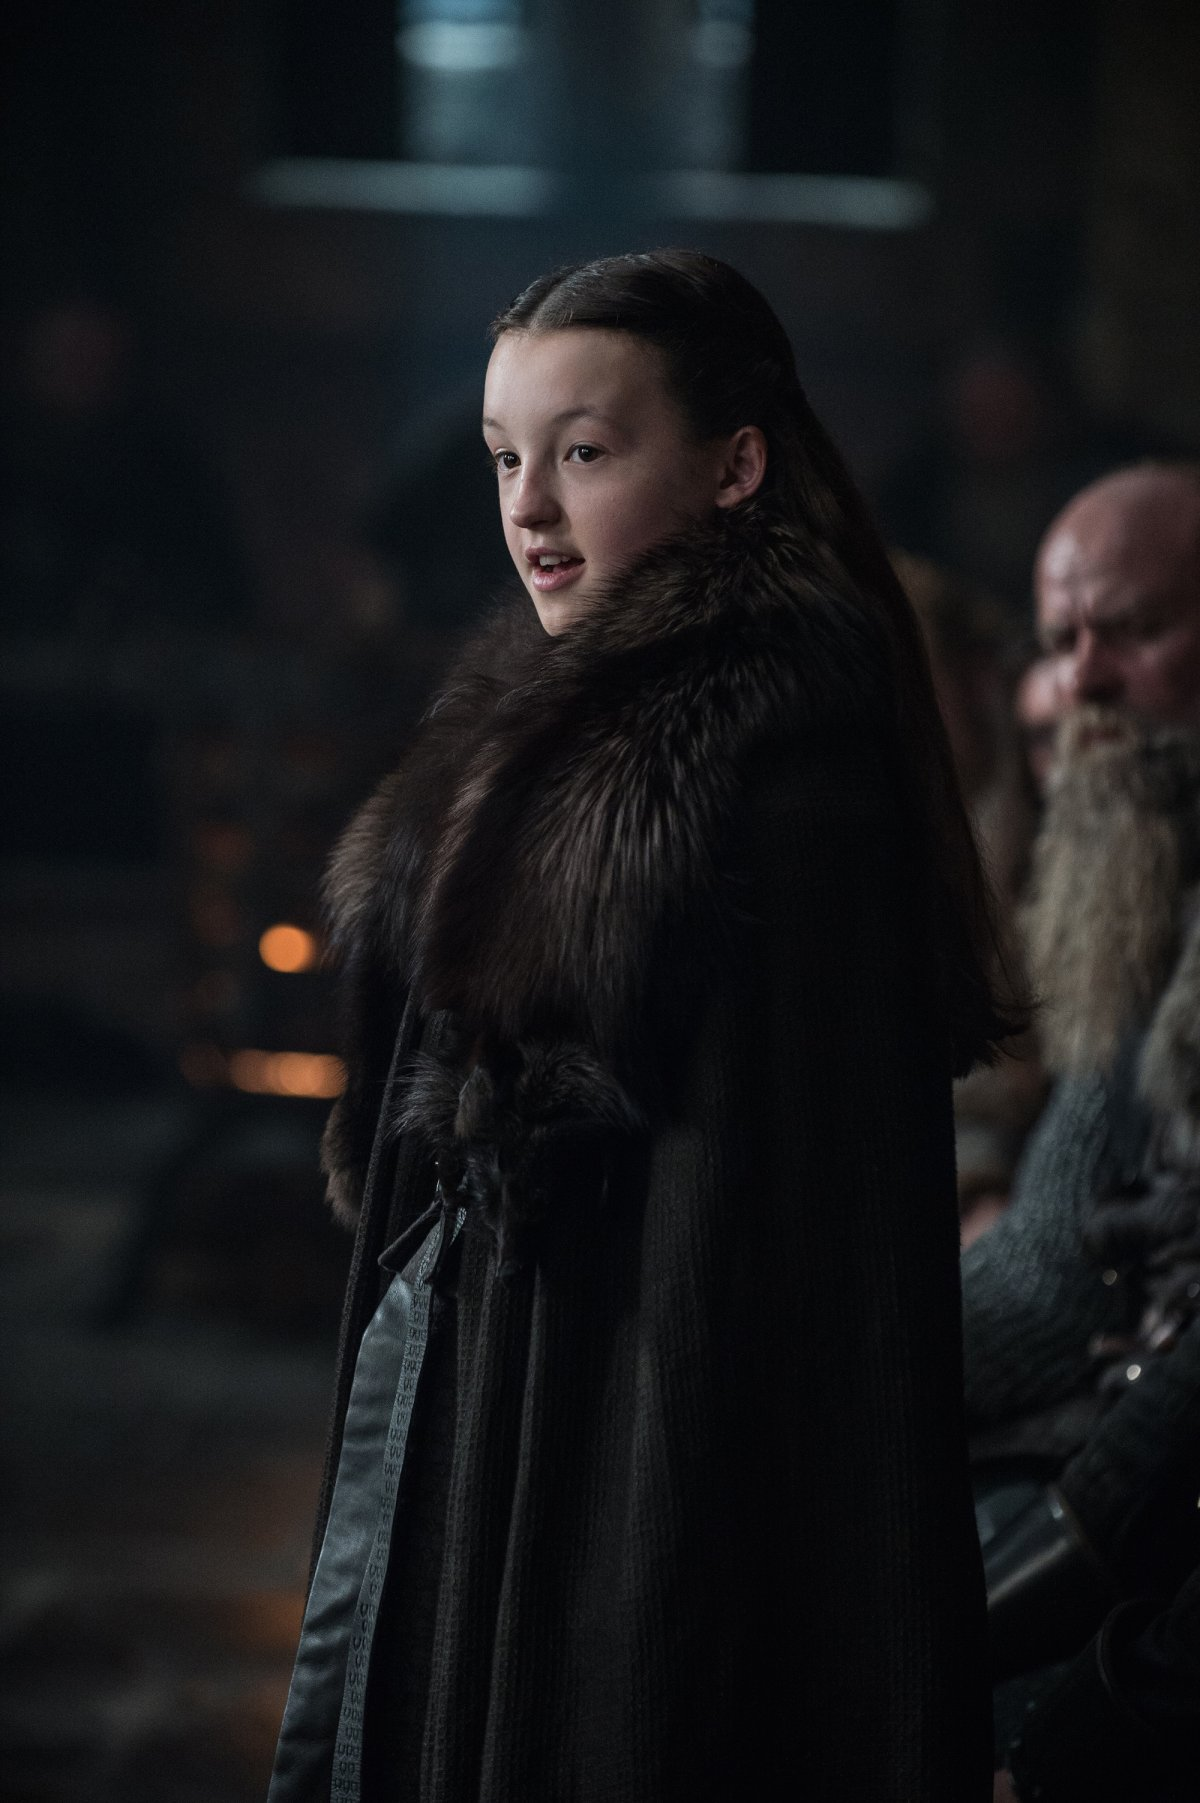 and-last-but-not-least-everyones-favorite-northern-leader-lyanna-mormont-will-be-featured-in-the-episode-we-cant-wait-to-hear-whatever-speech-she-gives